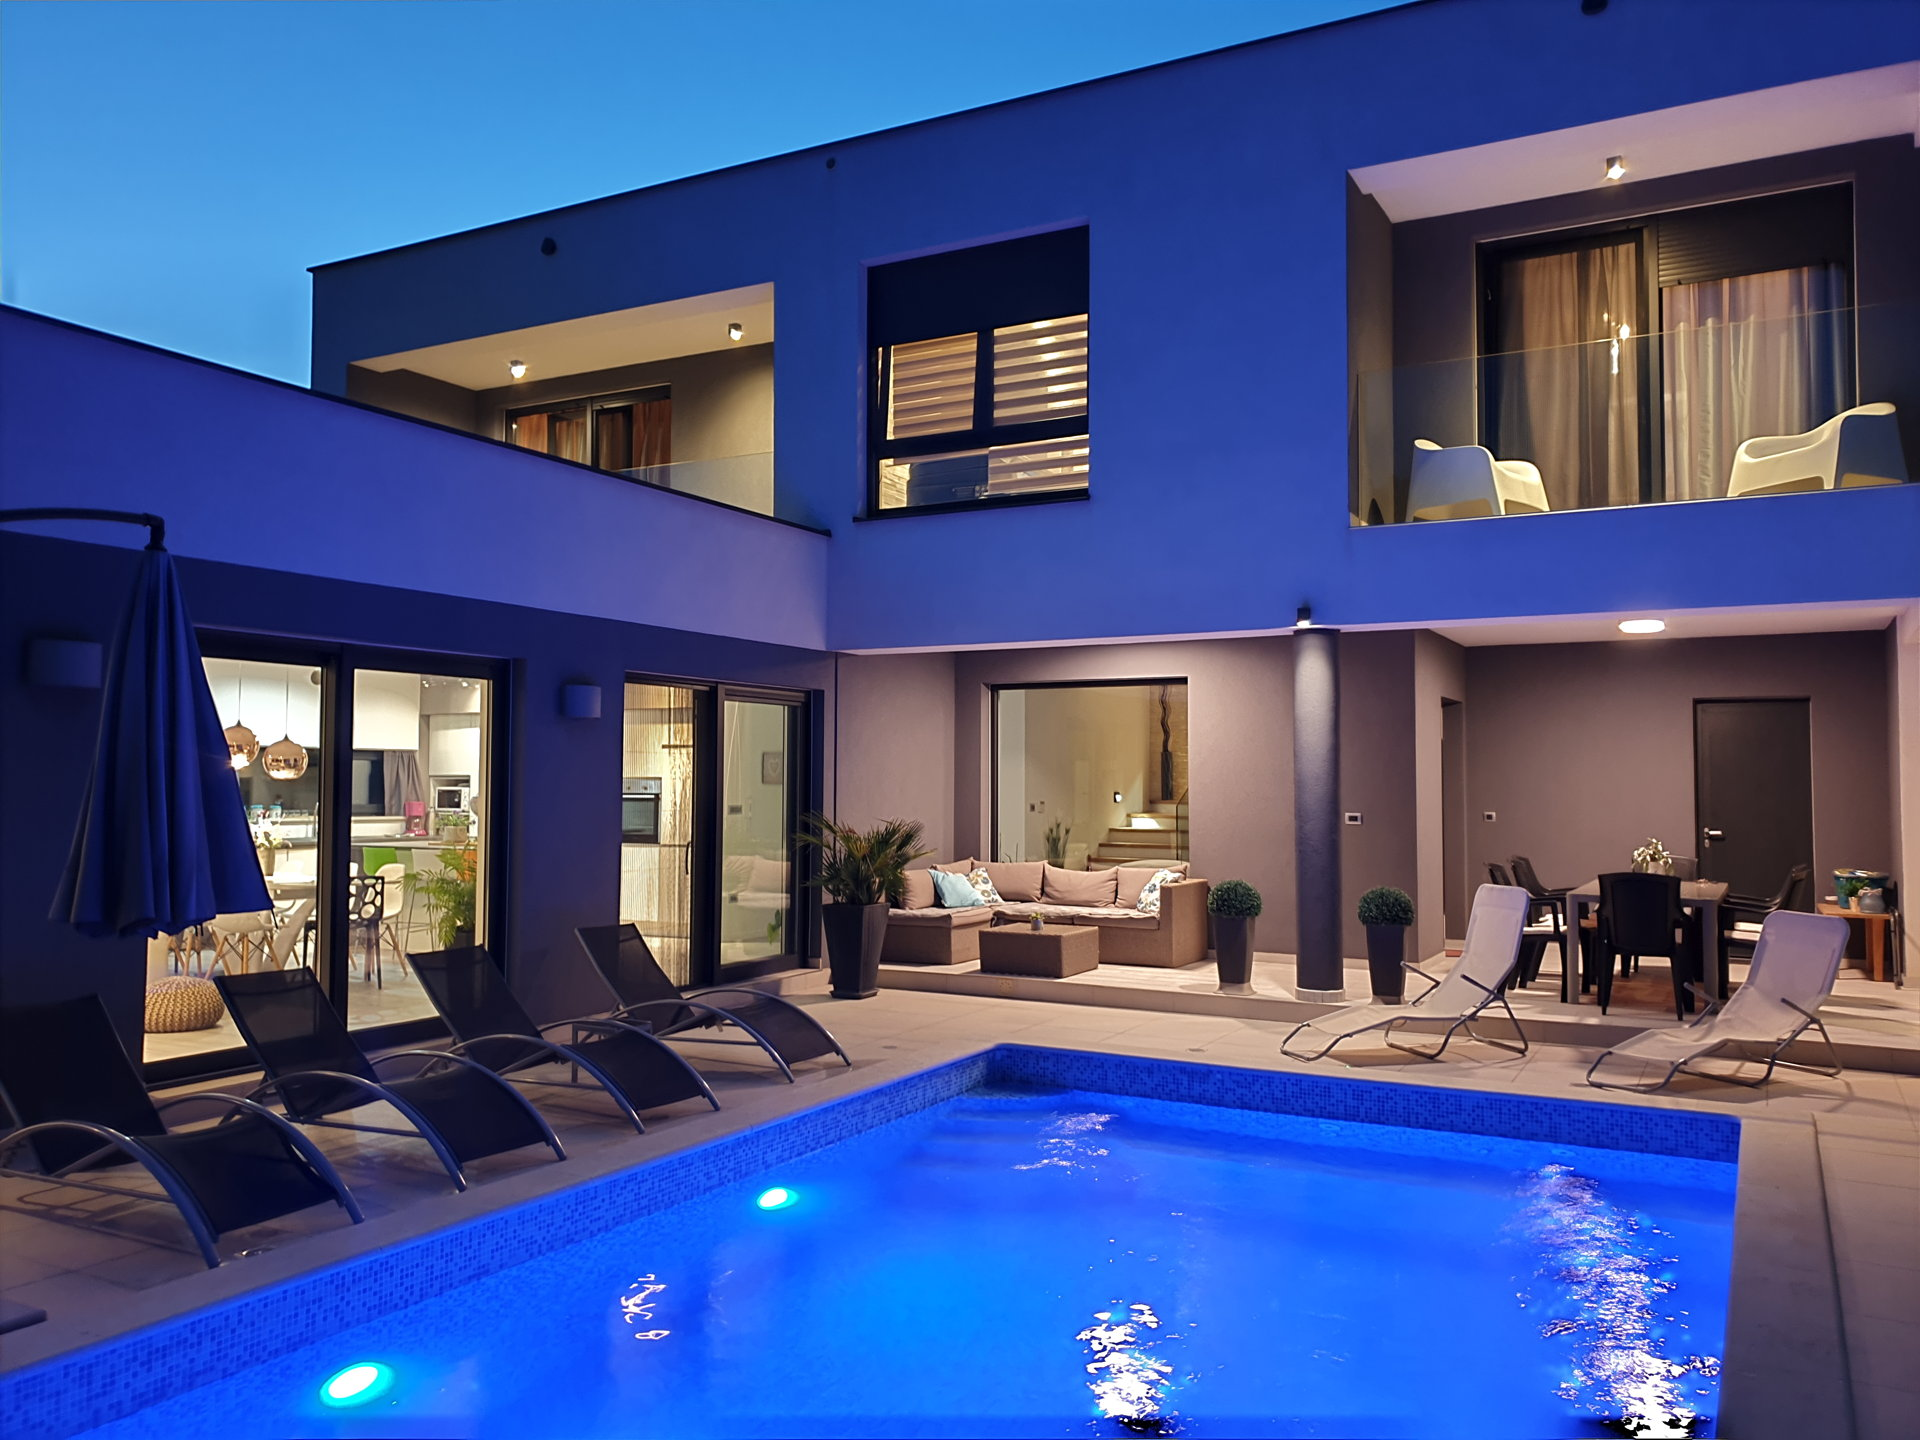 Villa Orchid with Pool in Pula by night